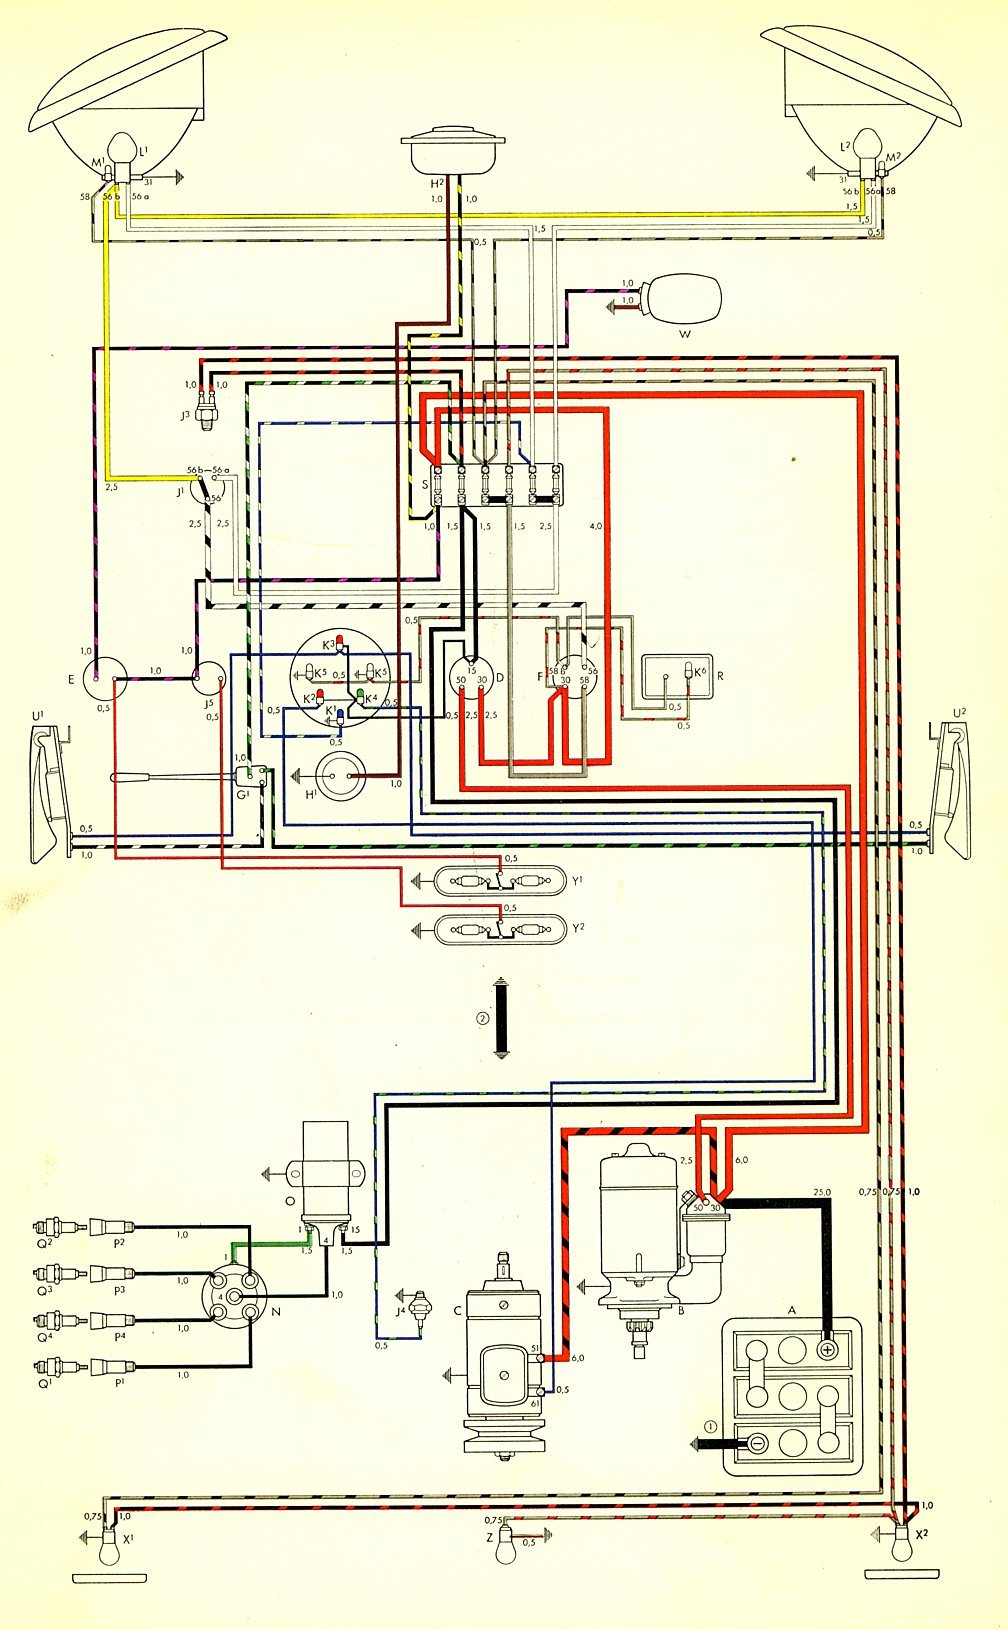 bus_59 thesamba com type 2 wiring diagrams 1968 vw bus wiring diagram at bakdesigns.co